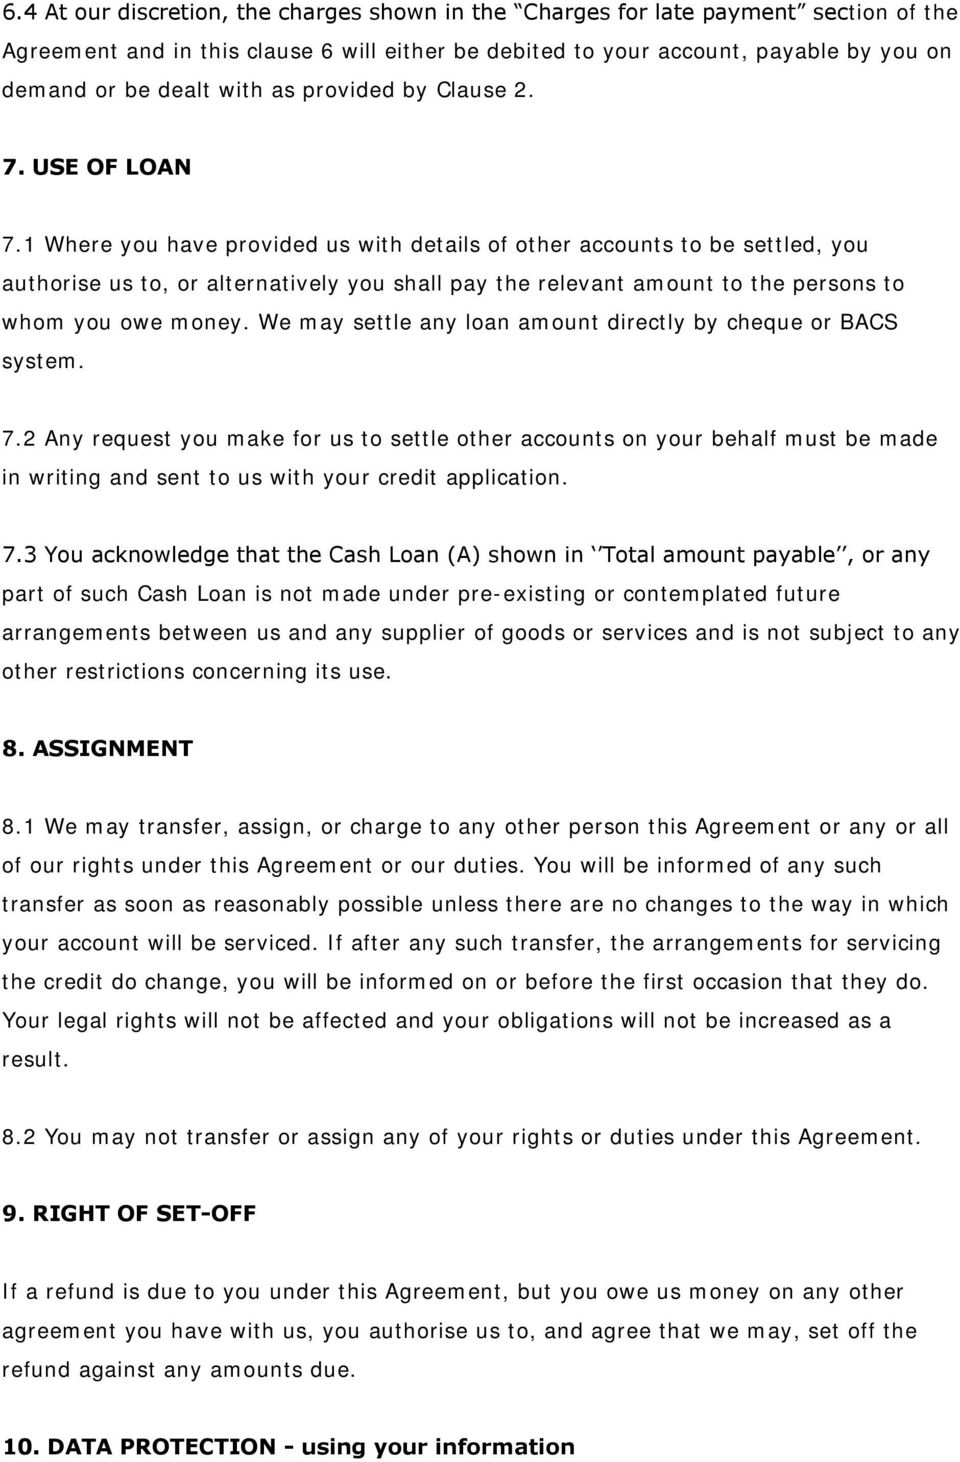 1 Where you have provided us with details of other accounts to be settled, you authorise us to, or alternatively you shall pay the relevant amount to the persons to whom you owe money.